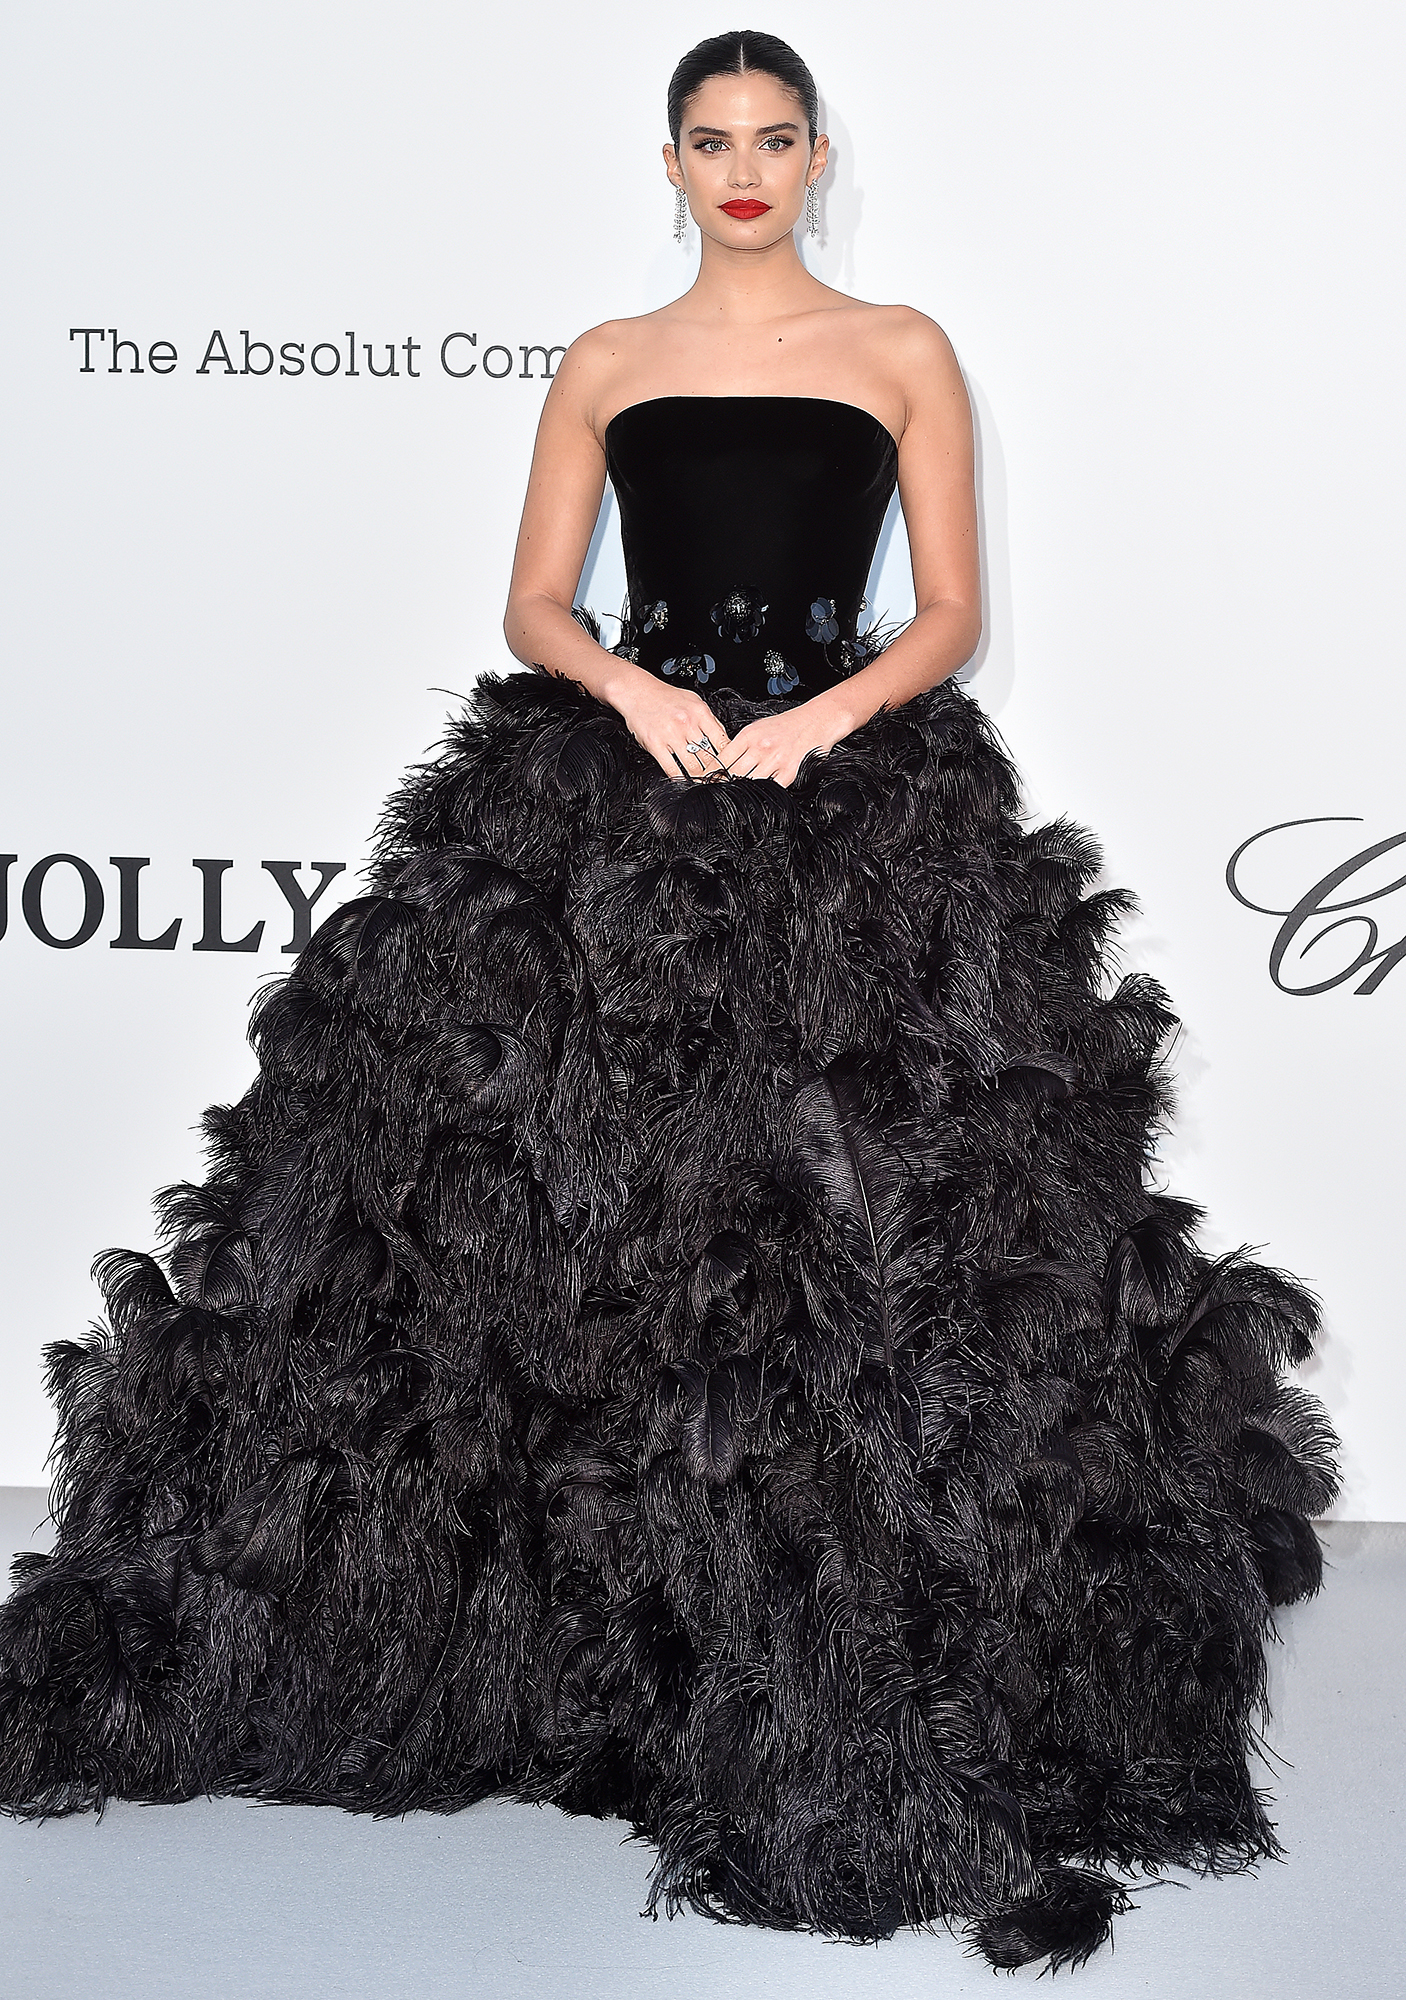 Sara-Sampaio - Proving black is anything but boring, the model rocked a feathery Armani ballgown at the amfAR Cannes Gala on Thursday, May 23.